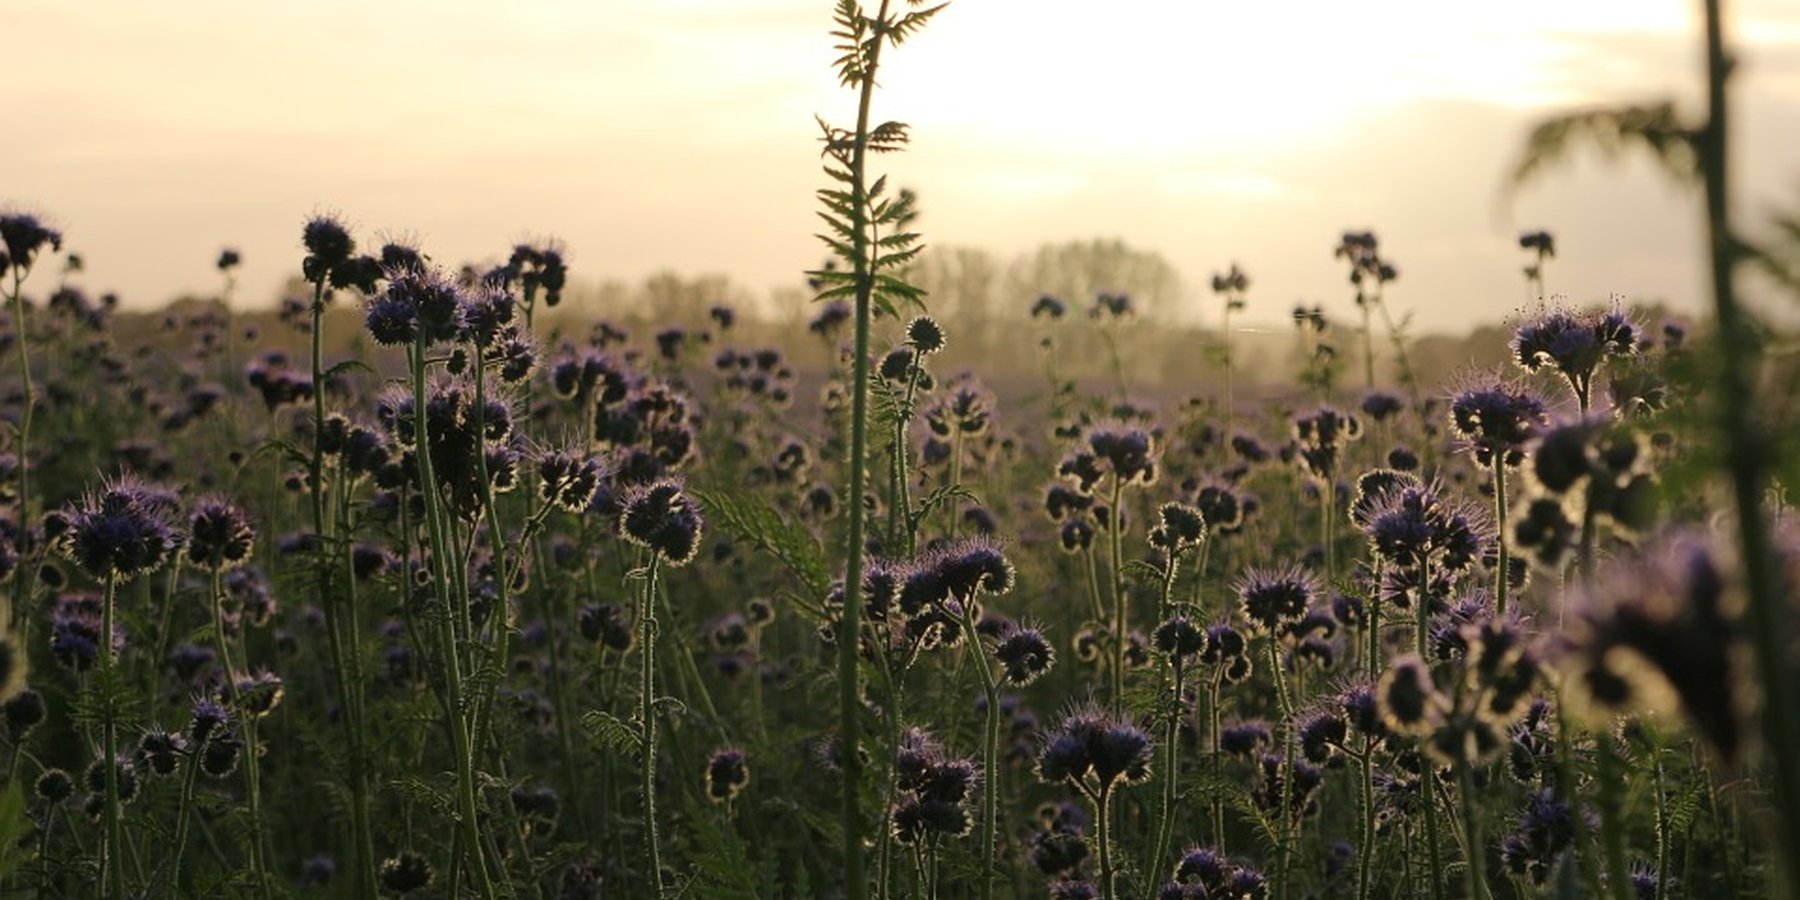 Phacelia tanacetifolia is a species of phacelia known by the common names lacy phacelia, blue tansy or purple tansy.